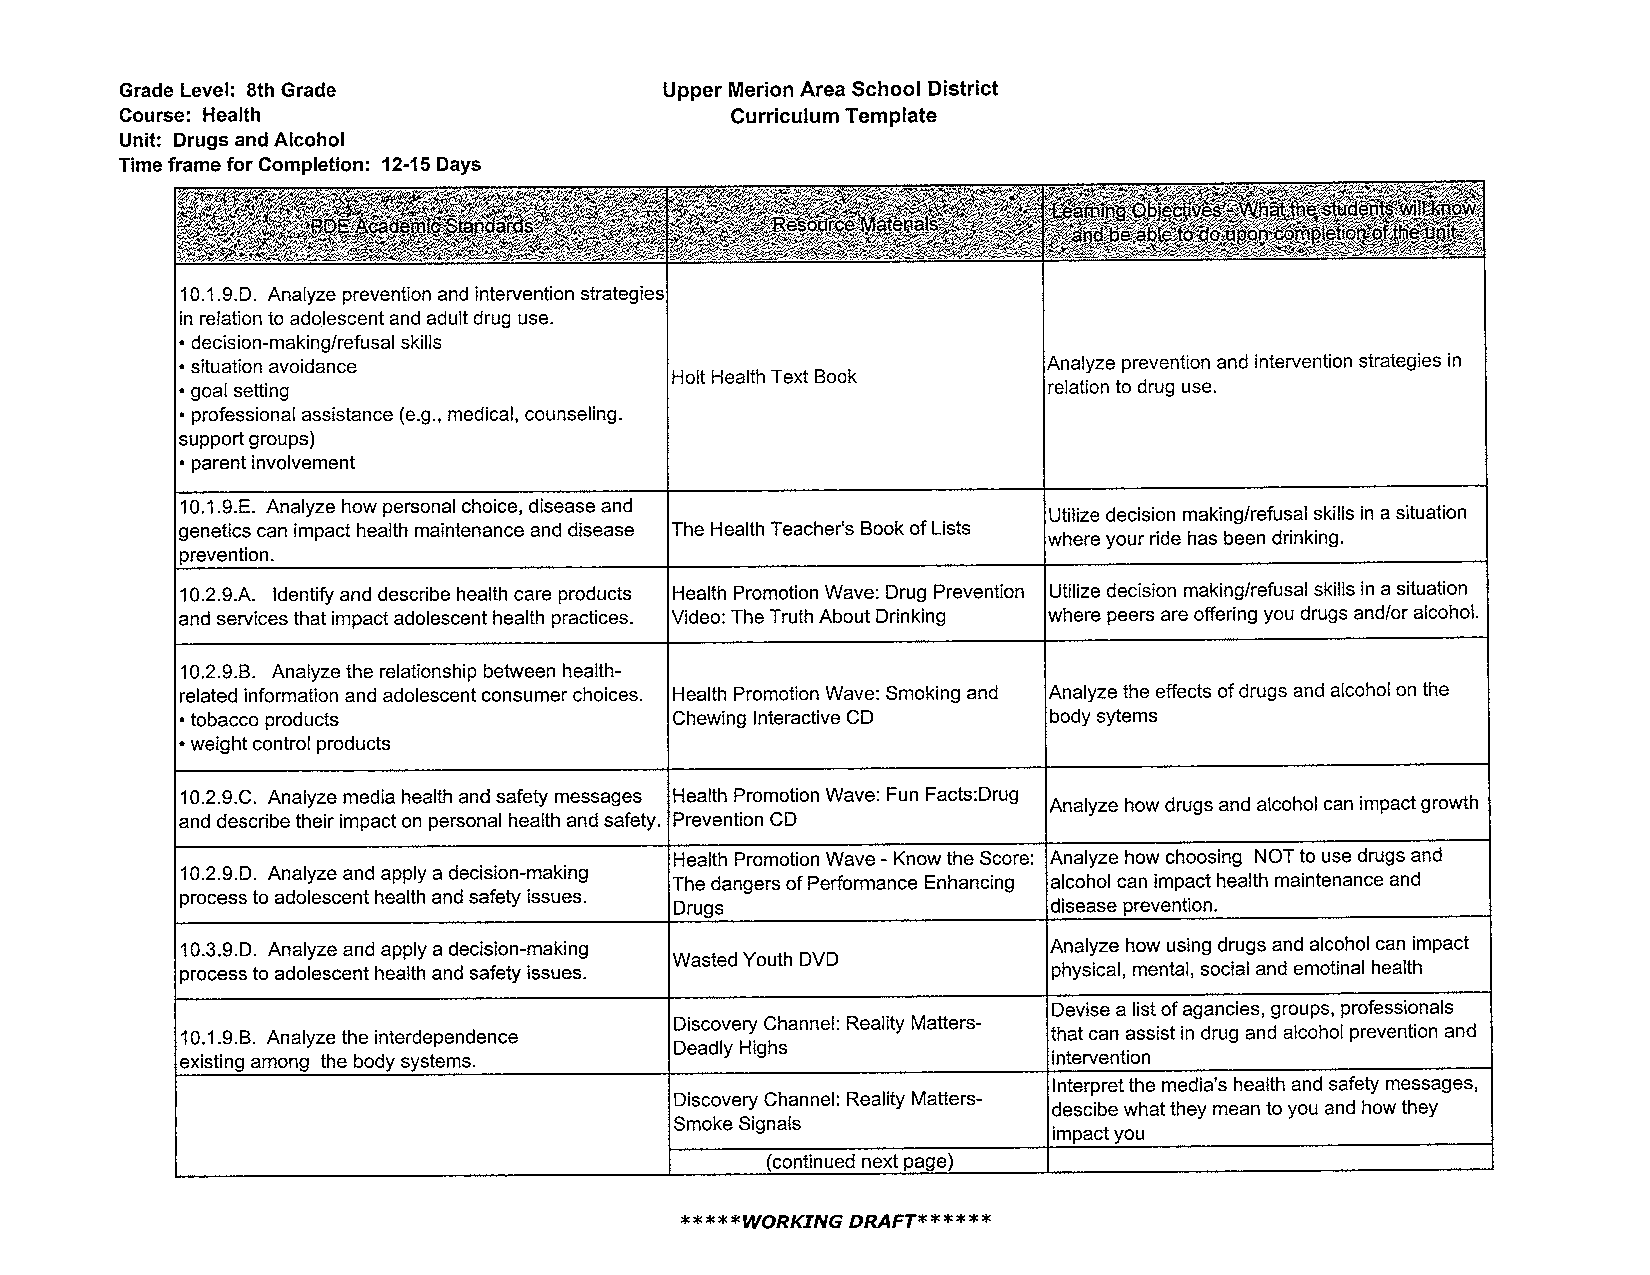 17 Best Images of Fun In Recovery Worksheets - Free ...